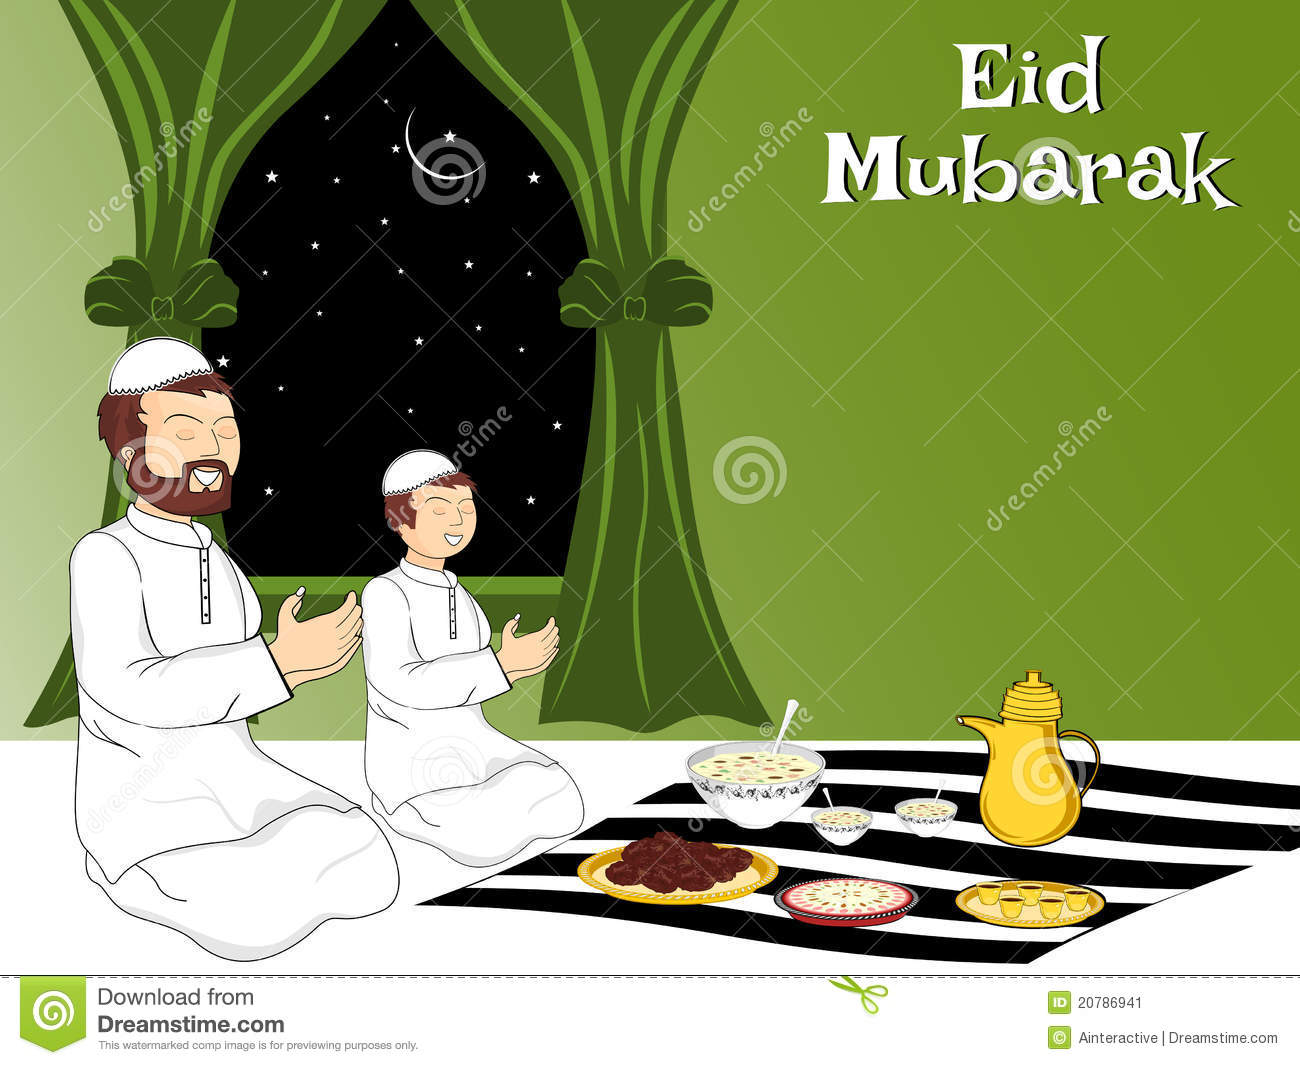 my eid celebration My well wishes, my good wishes for you are the just prayers for your long happy life from god on this noble event wish you a very happy eid mubarak, my dear may god give you happiness of heaven .